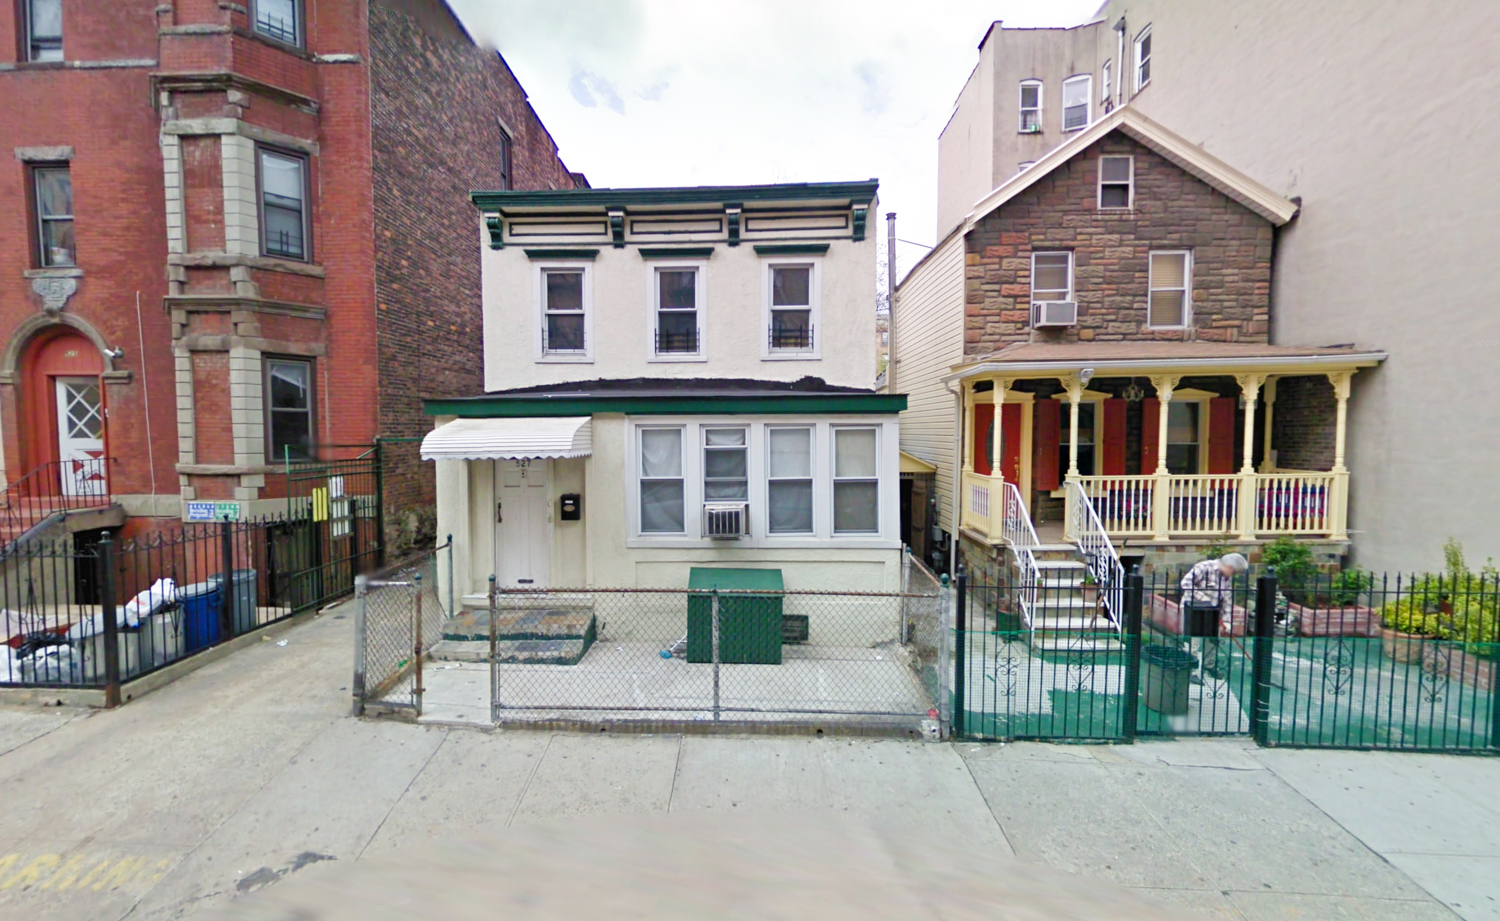 531 Tinton Avenue, via Google Maps